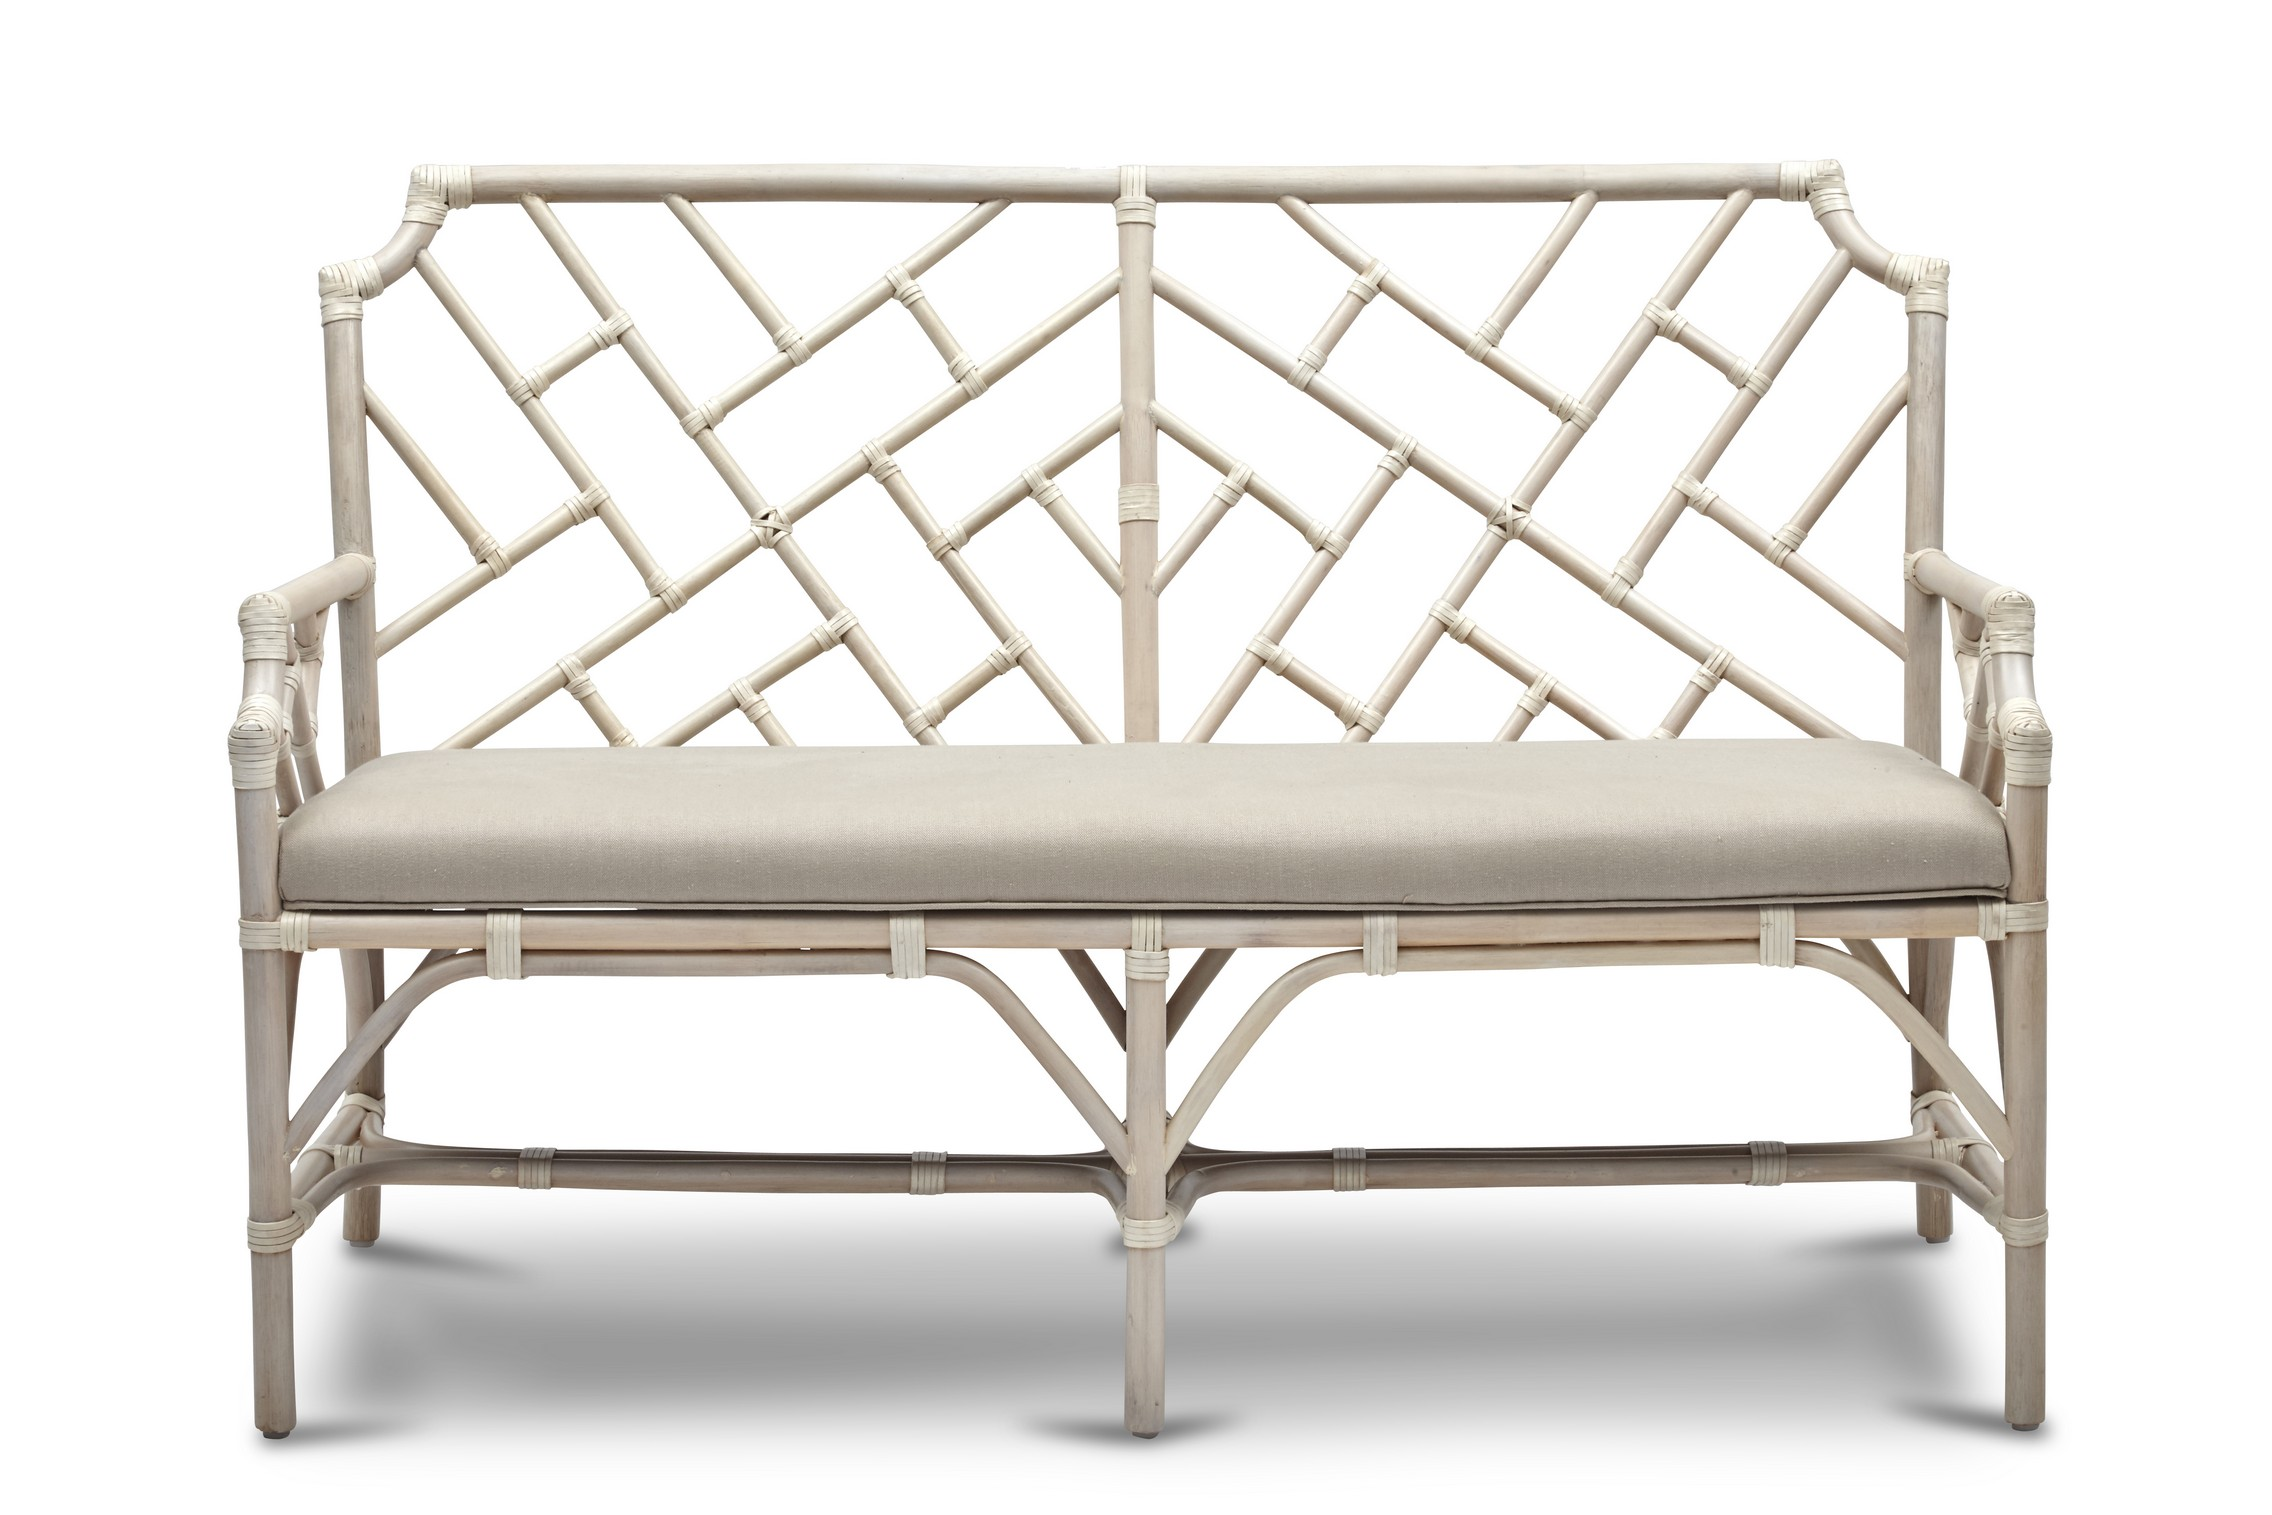 Full Size of Chippendale Sofa For Sale Sofas Ethan Allen Table Reproduction Cover History Furniture Uk Slipcover Lane Style Boca Sand Settee Shop Rattan Dear Keaton Arten Sofa Chippendale Sofa